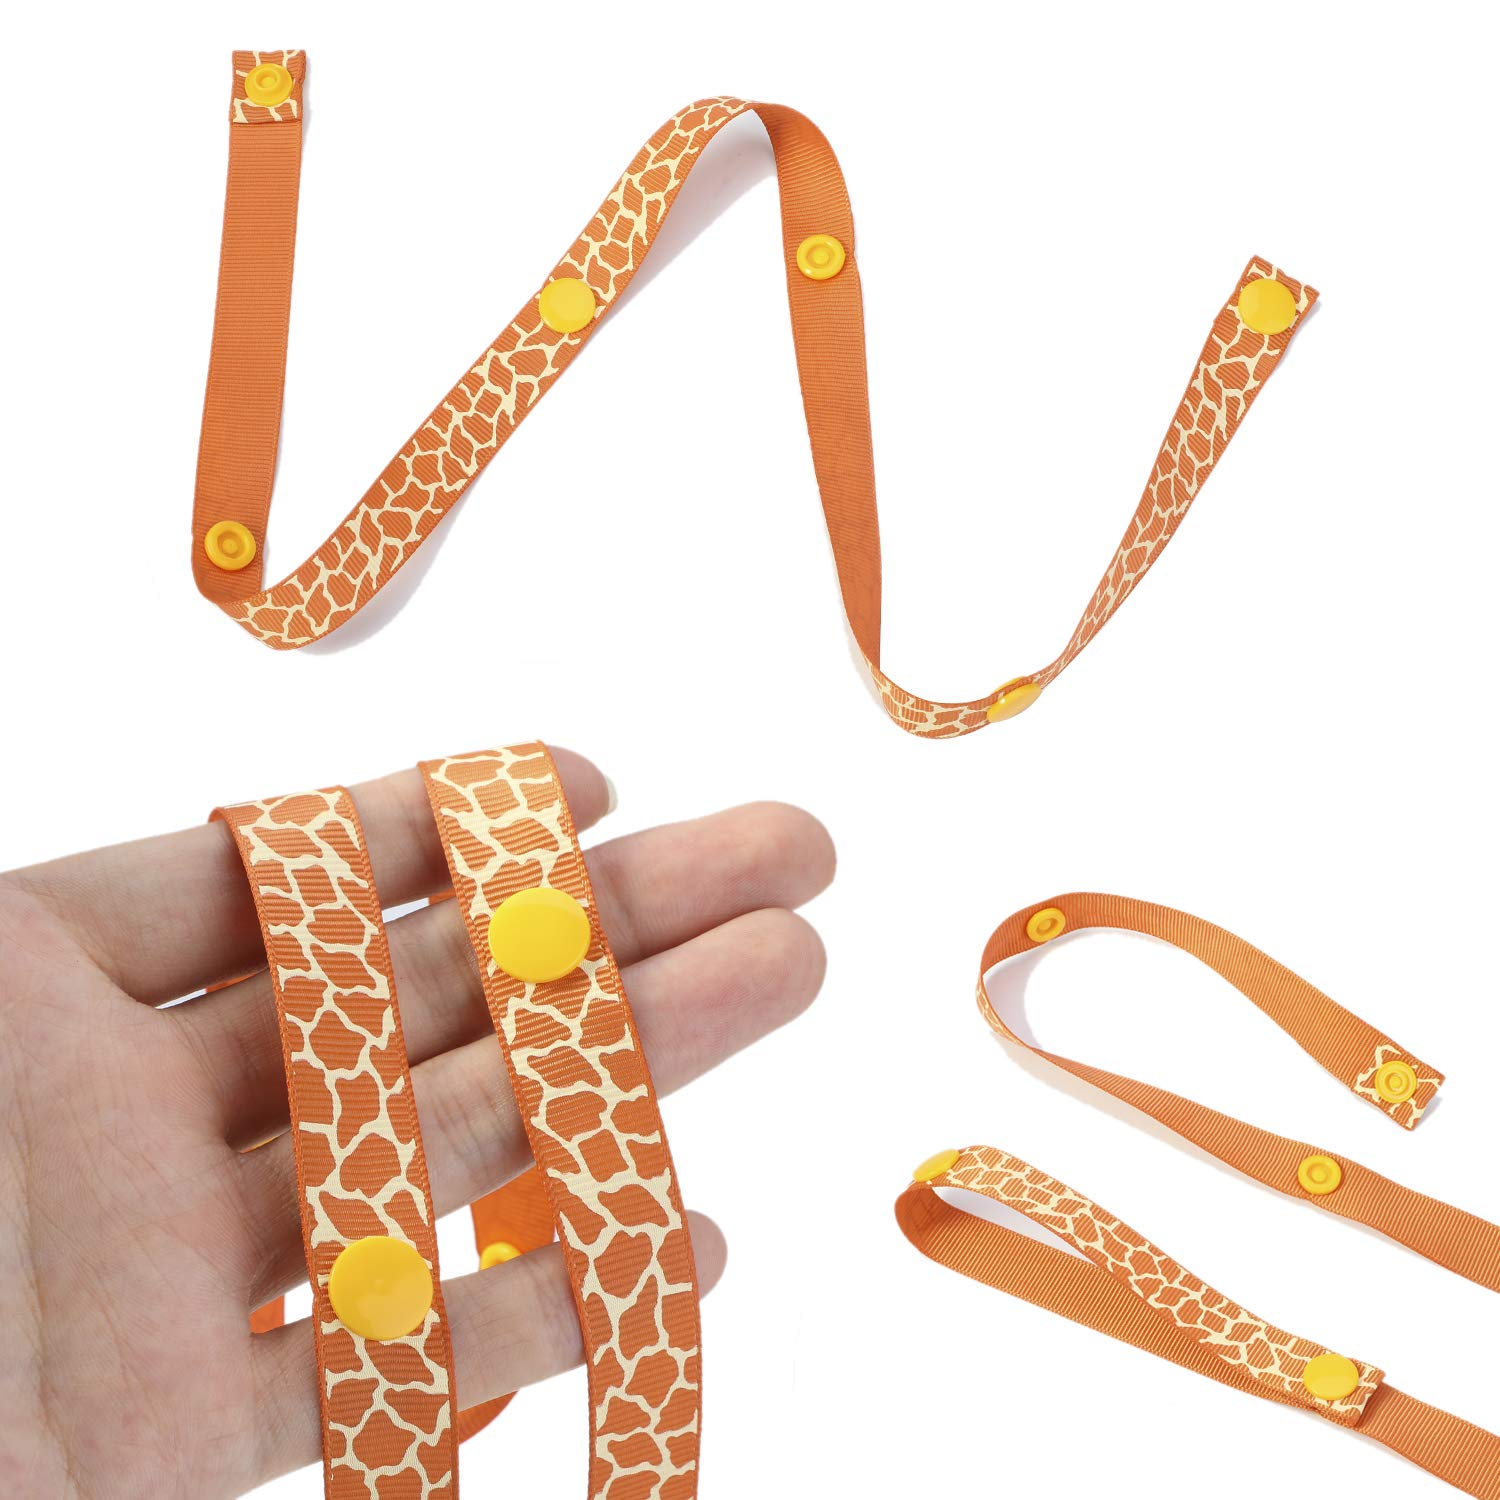 Hifot Baby Toy Straps 5 Pack 5 New Sippy Pal Baby Bottle Cup Pacifier Safety Strap Toy Dummy Clip Anti-Drop Strap Holder Hanger Hook for Stroller Pushchair Pram